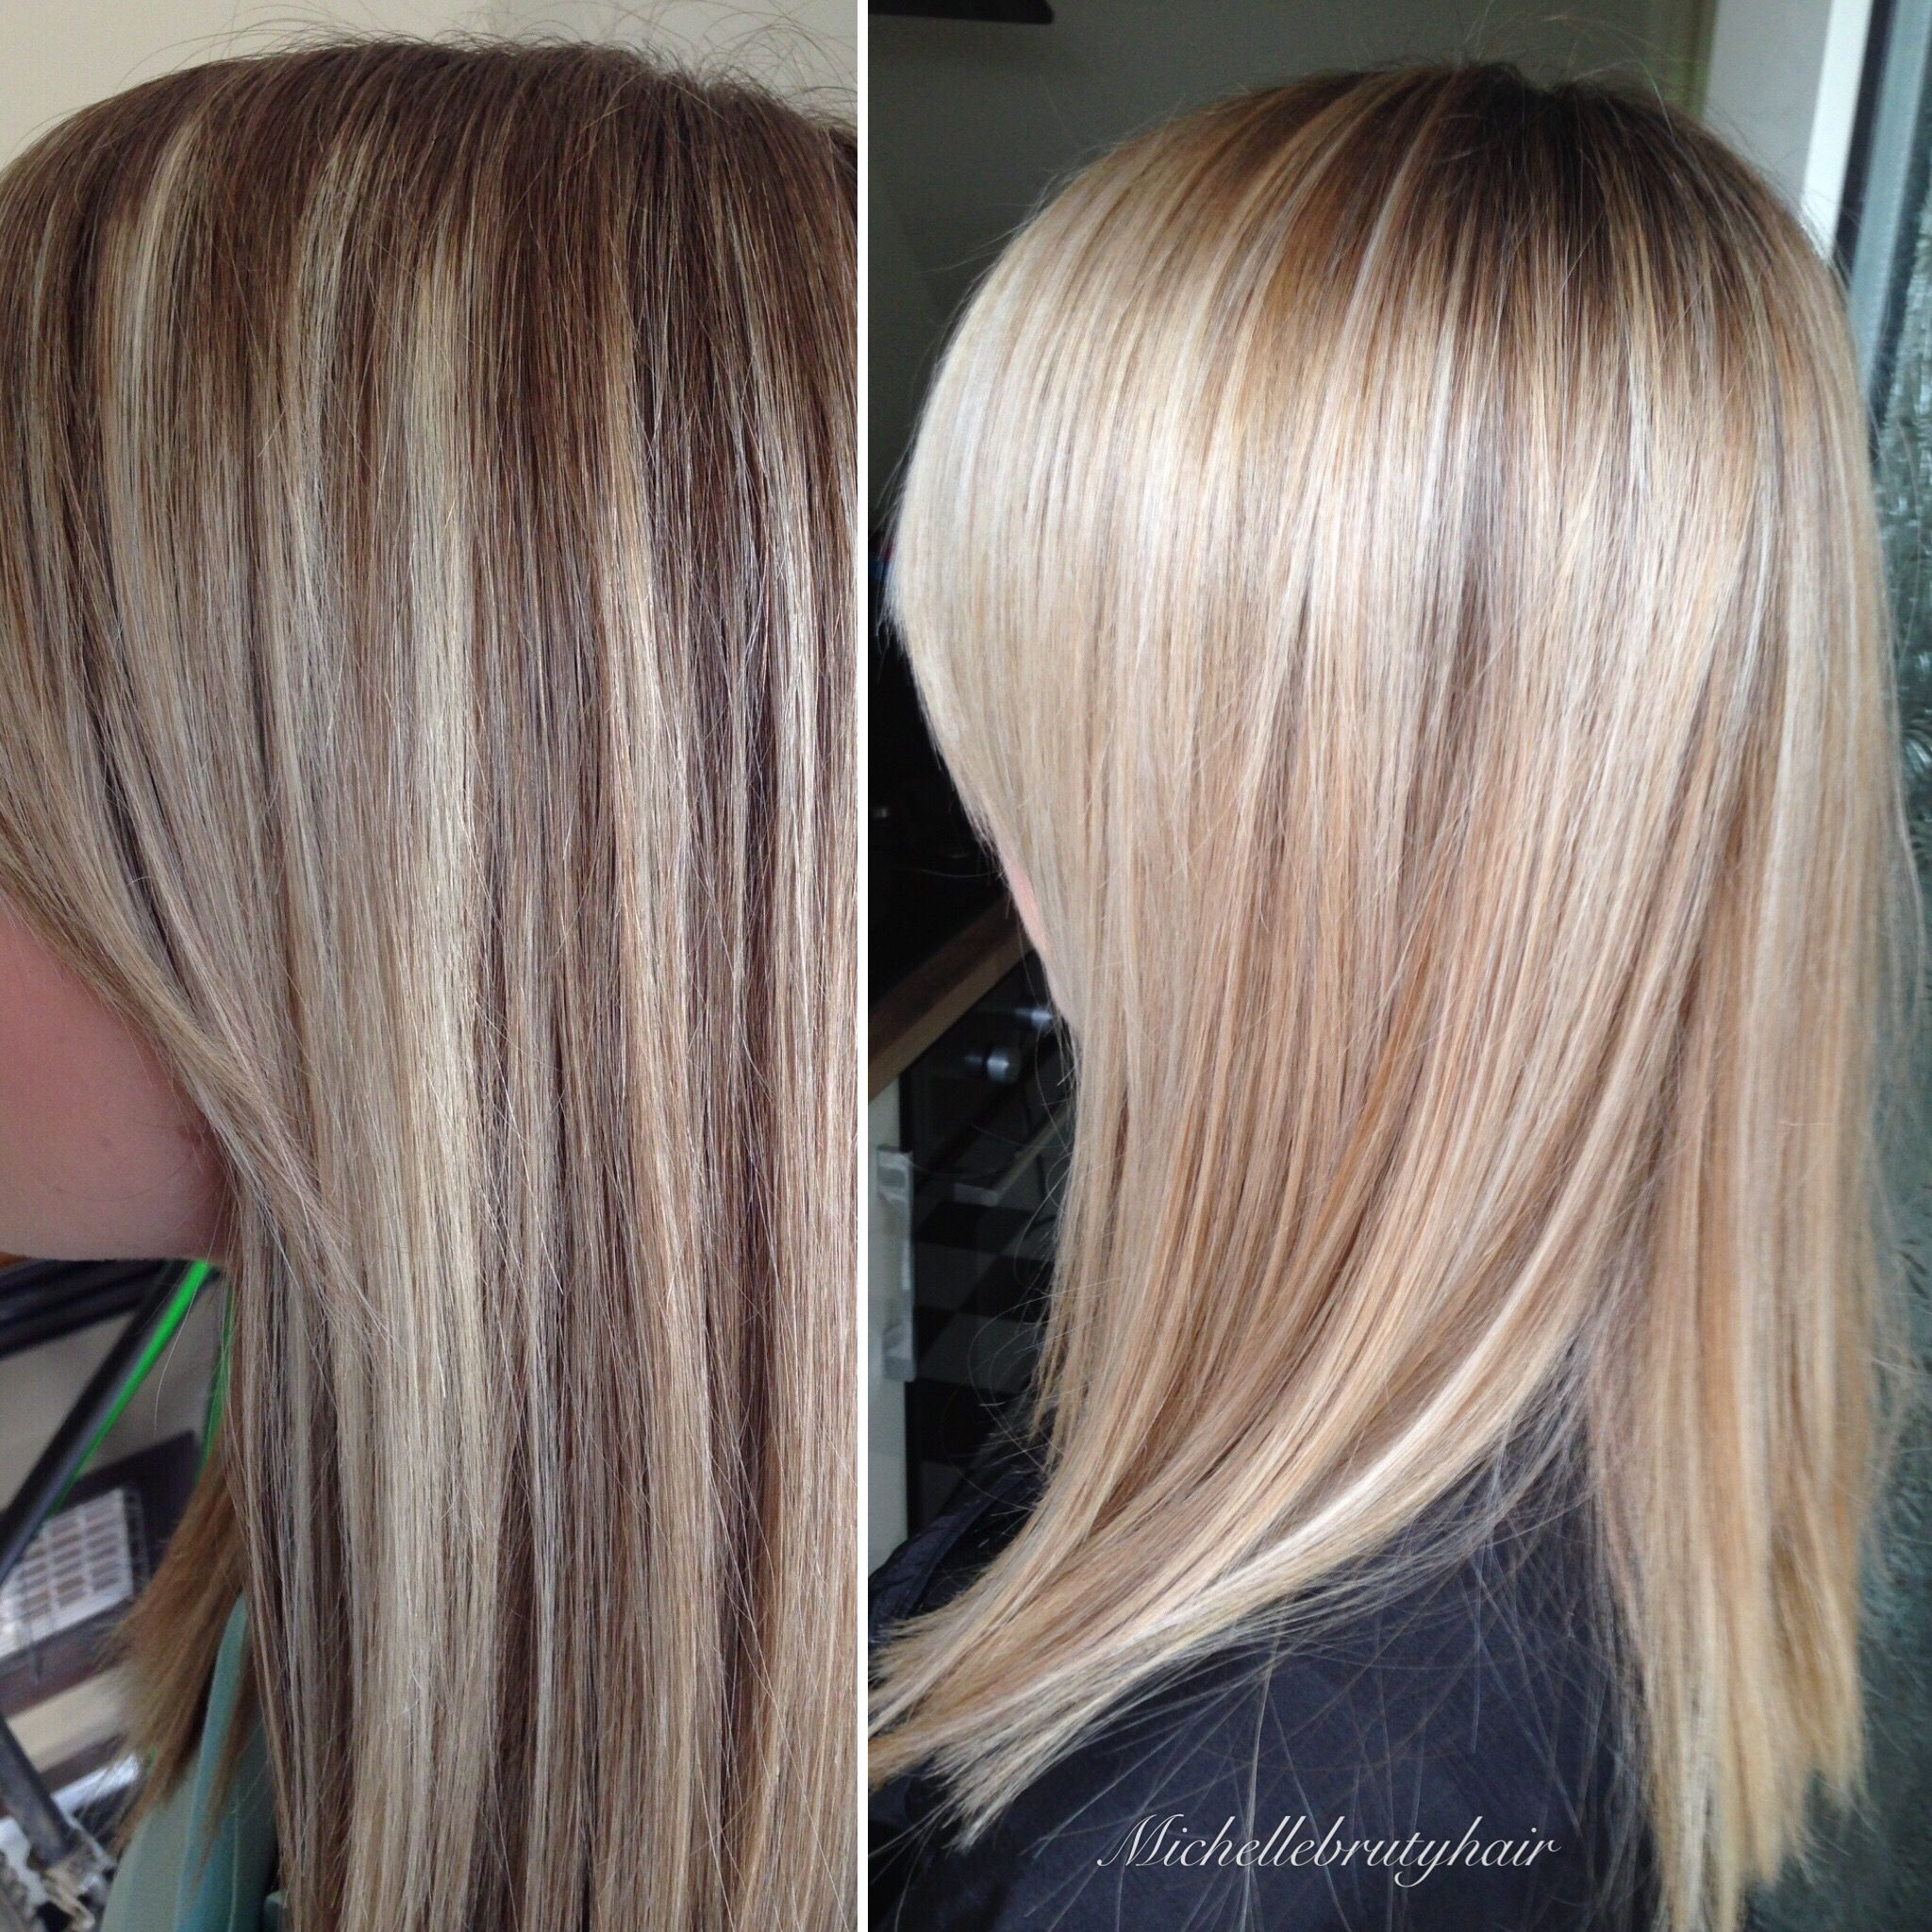 This client had been having cap highlights!! They were